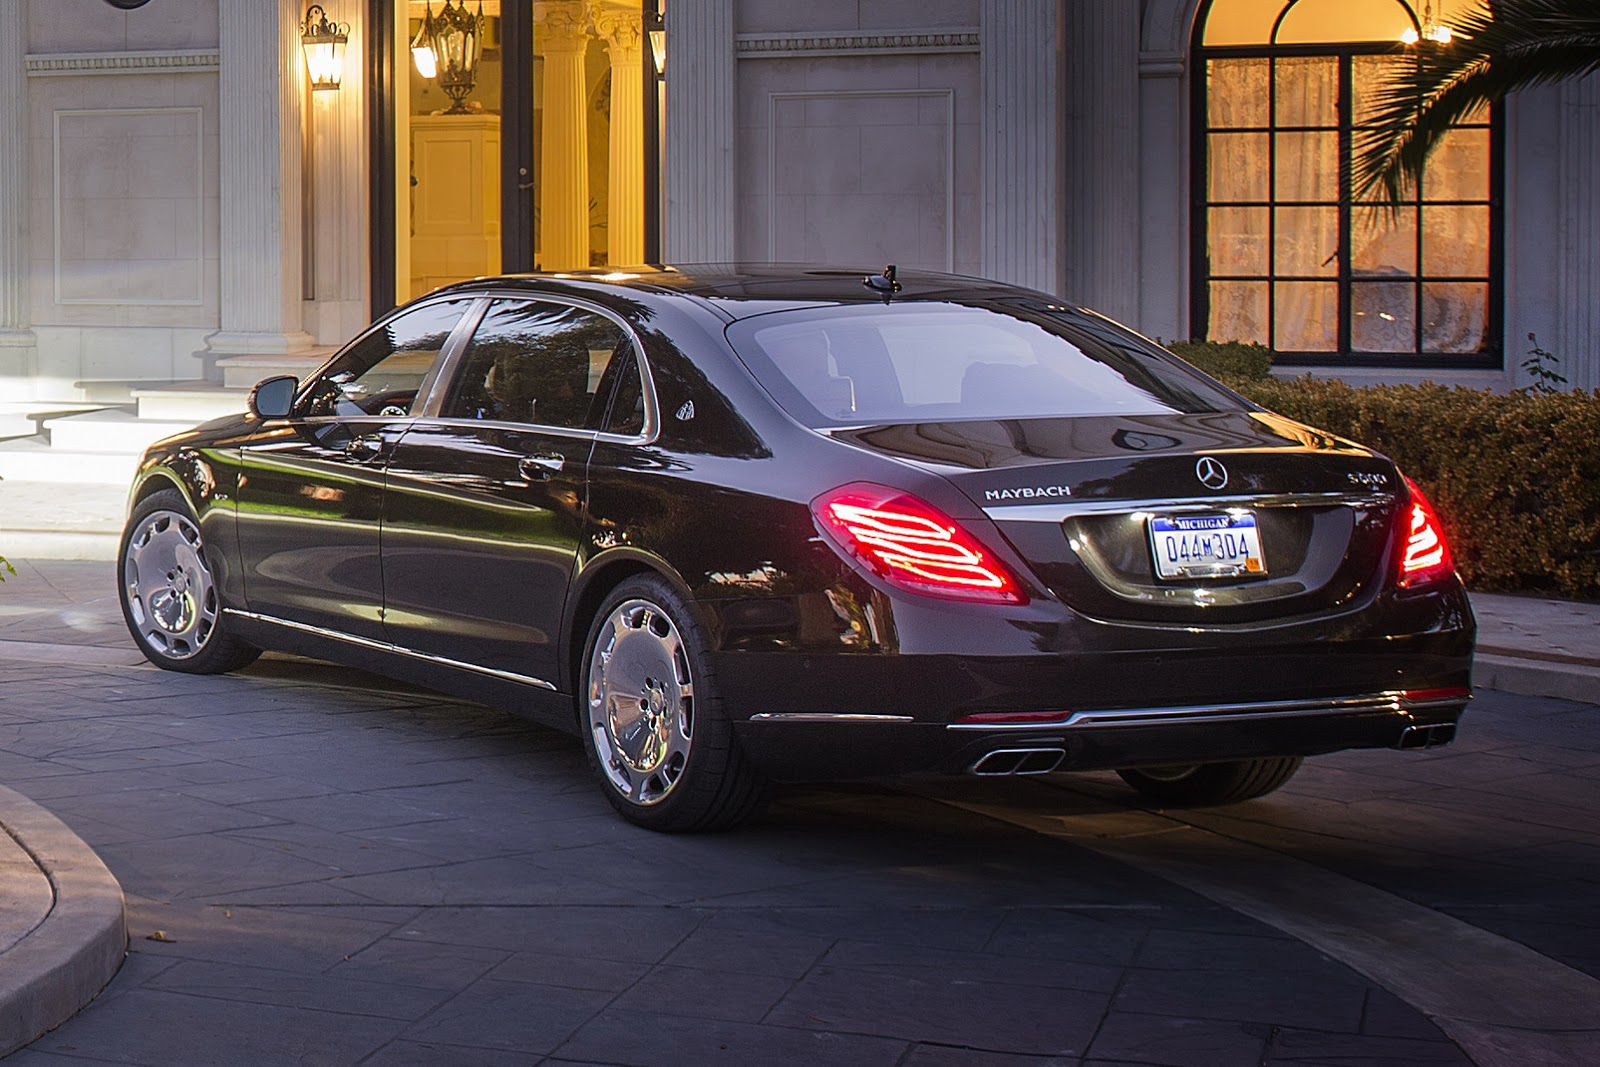 2019 Mercedes Benz S600 Pullman Maybach photo - 2